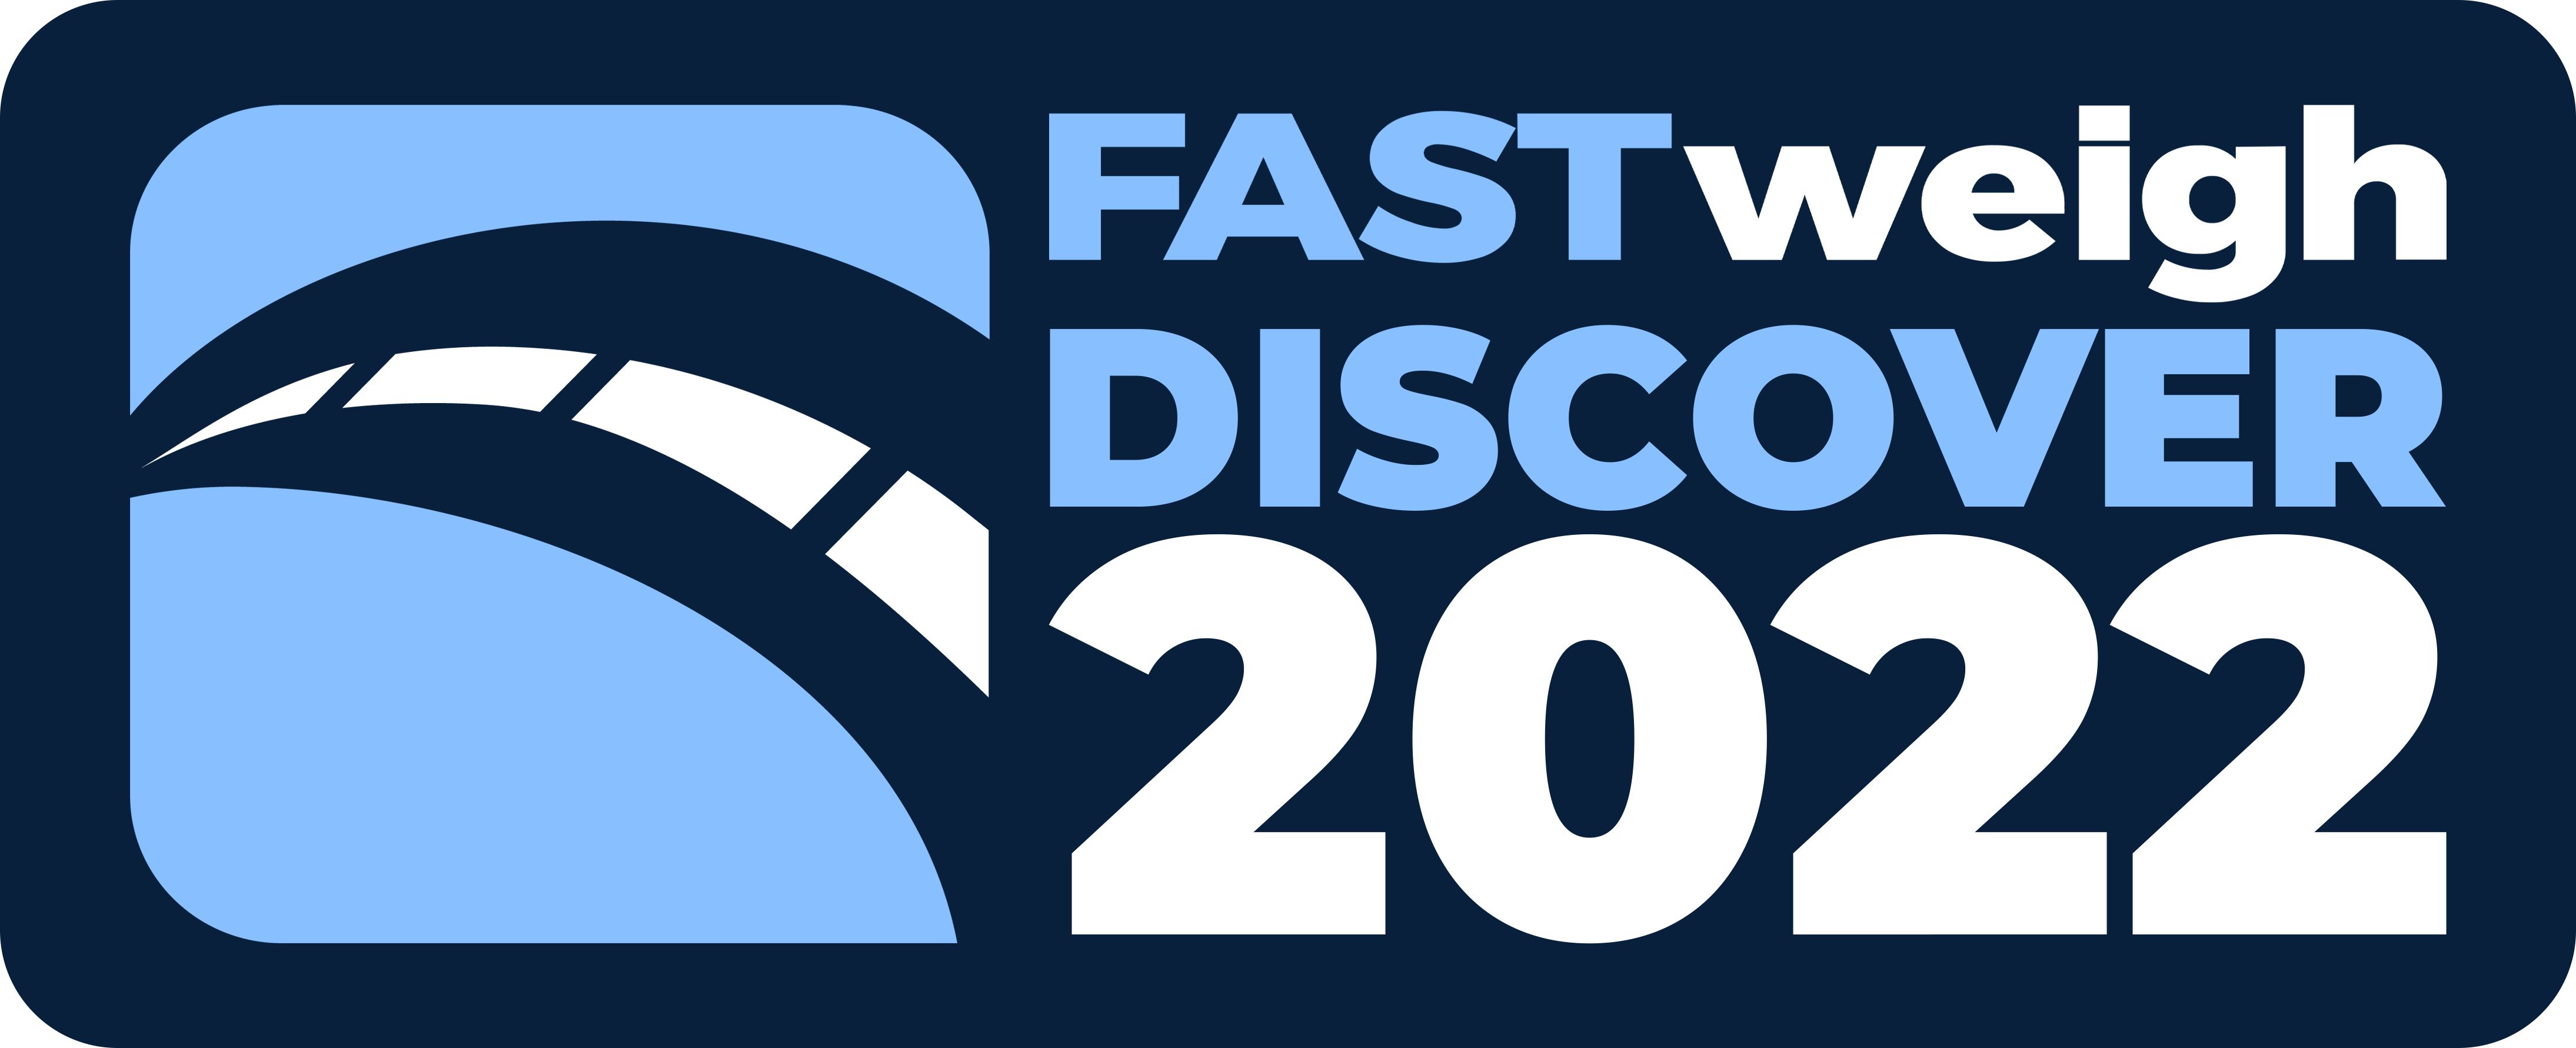 Fast-Weigh Discover 2022